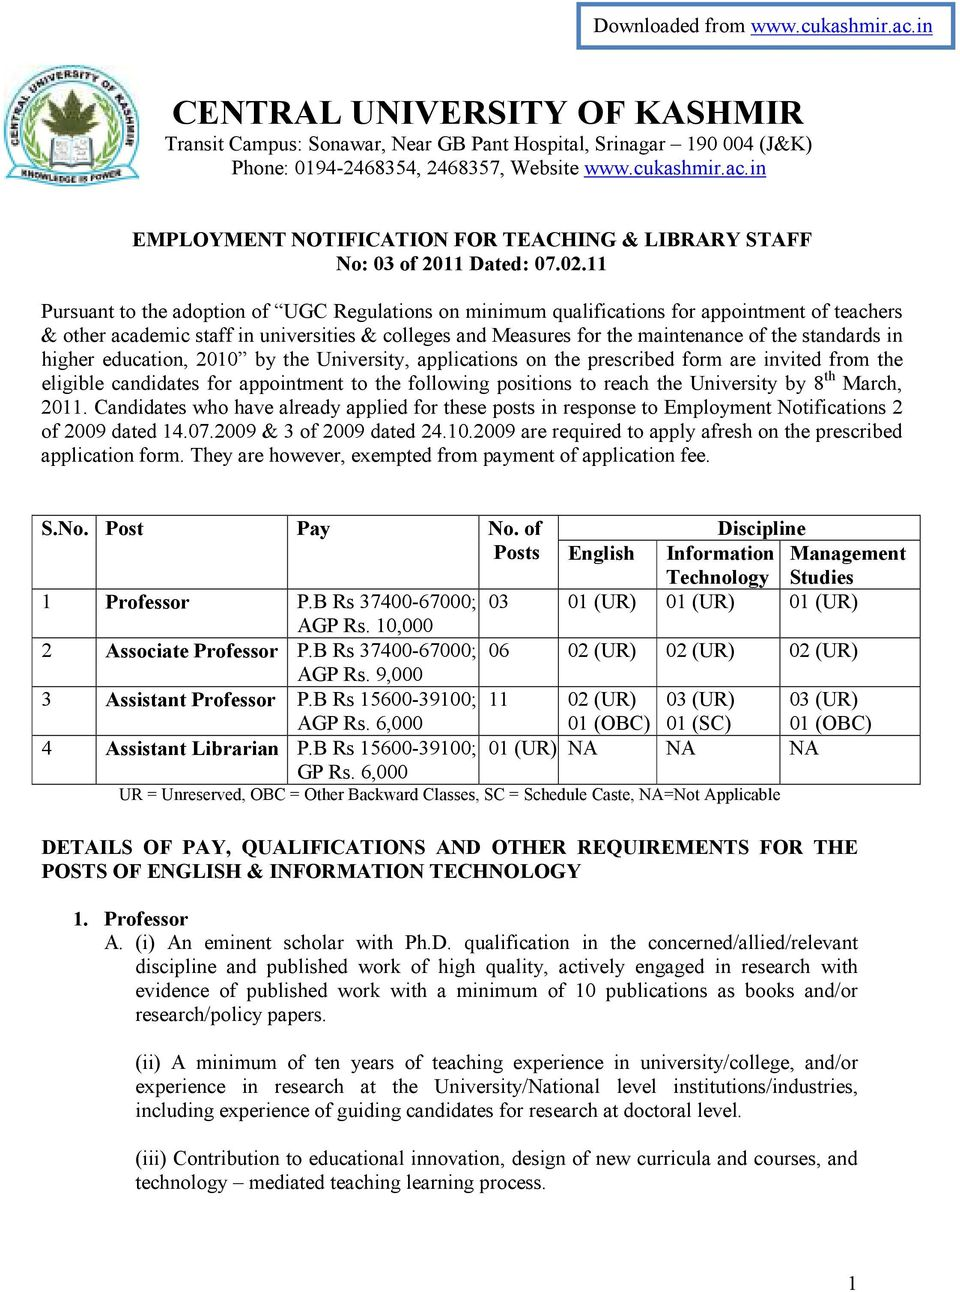 standards in higher education, 2010 by the University, applications on the prescribed form are invited from the eligible candidates for appointment to the following positions to reach the University